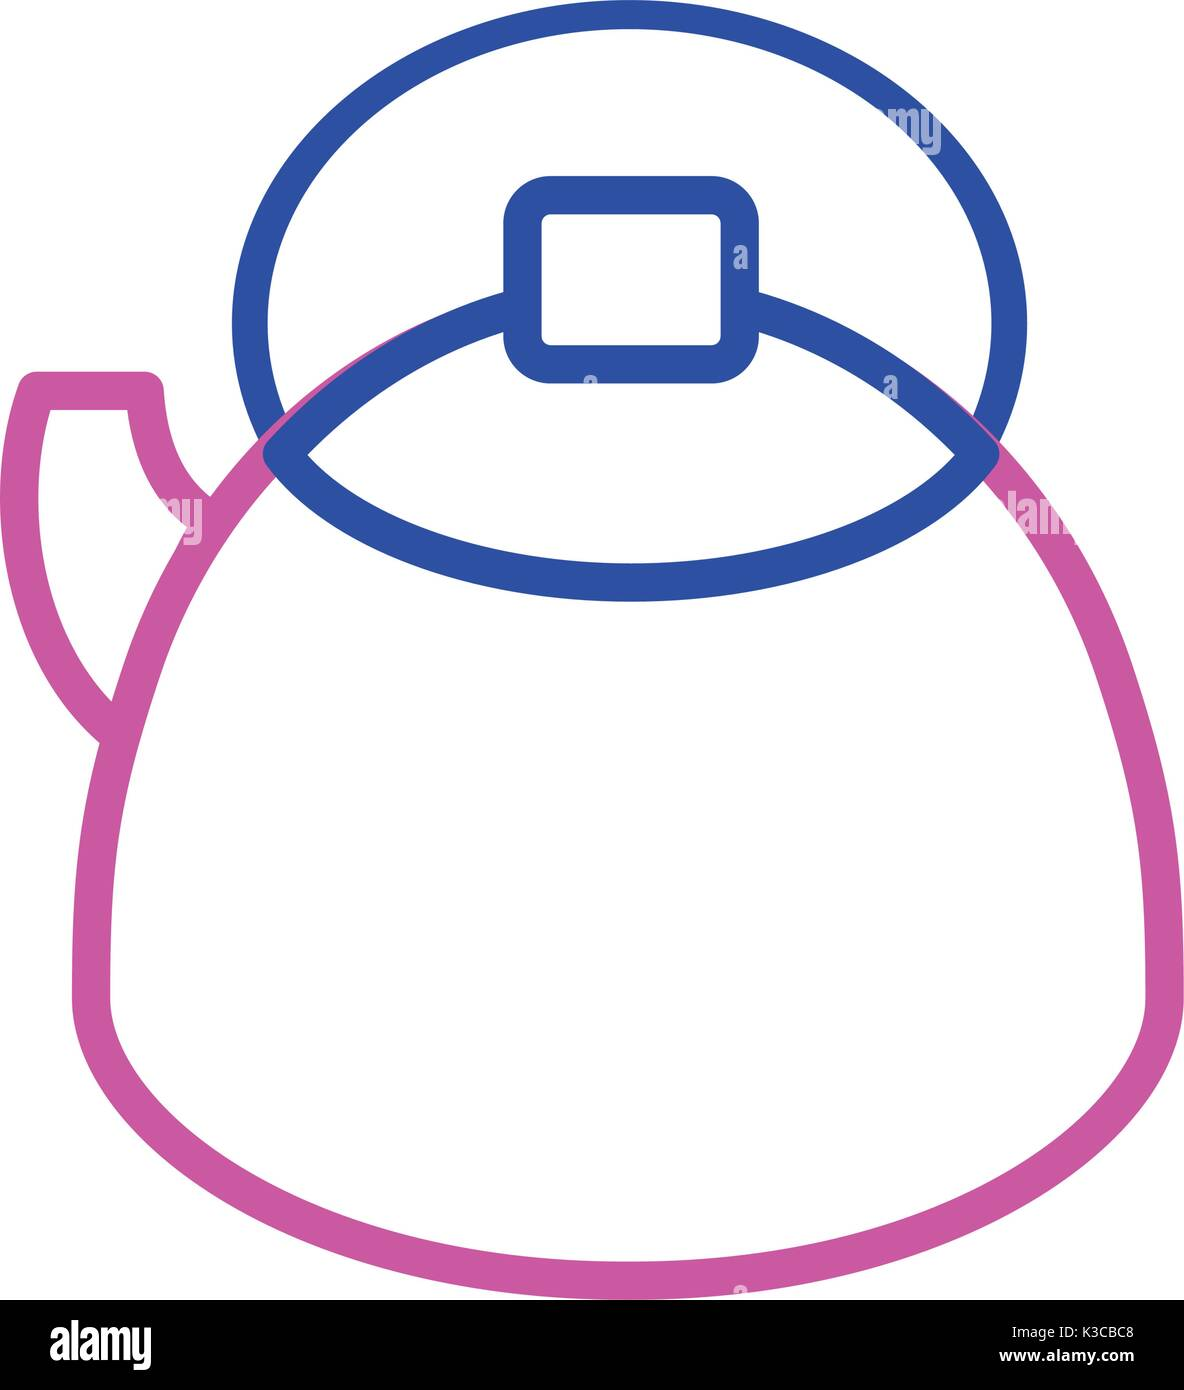 silhouette teapot kitchen utensil object to cuisine - Stock Vector